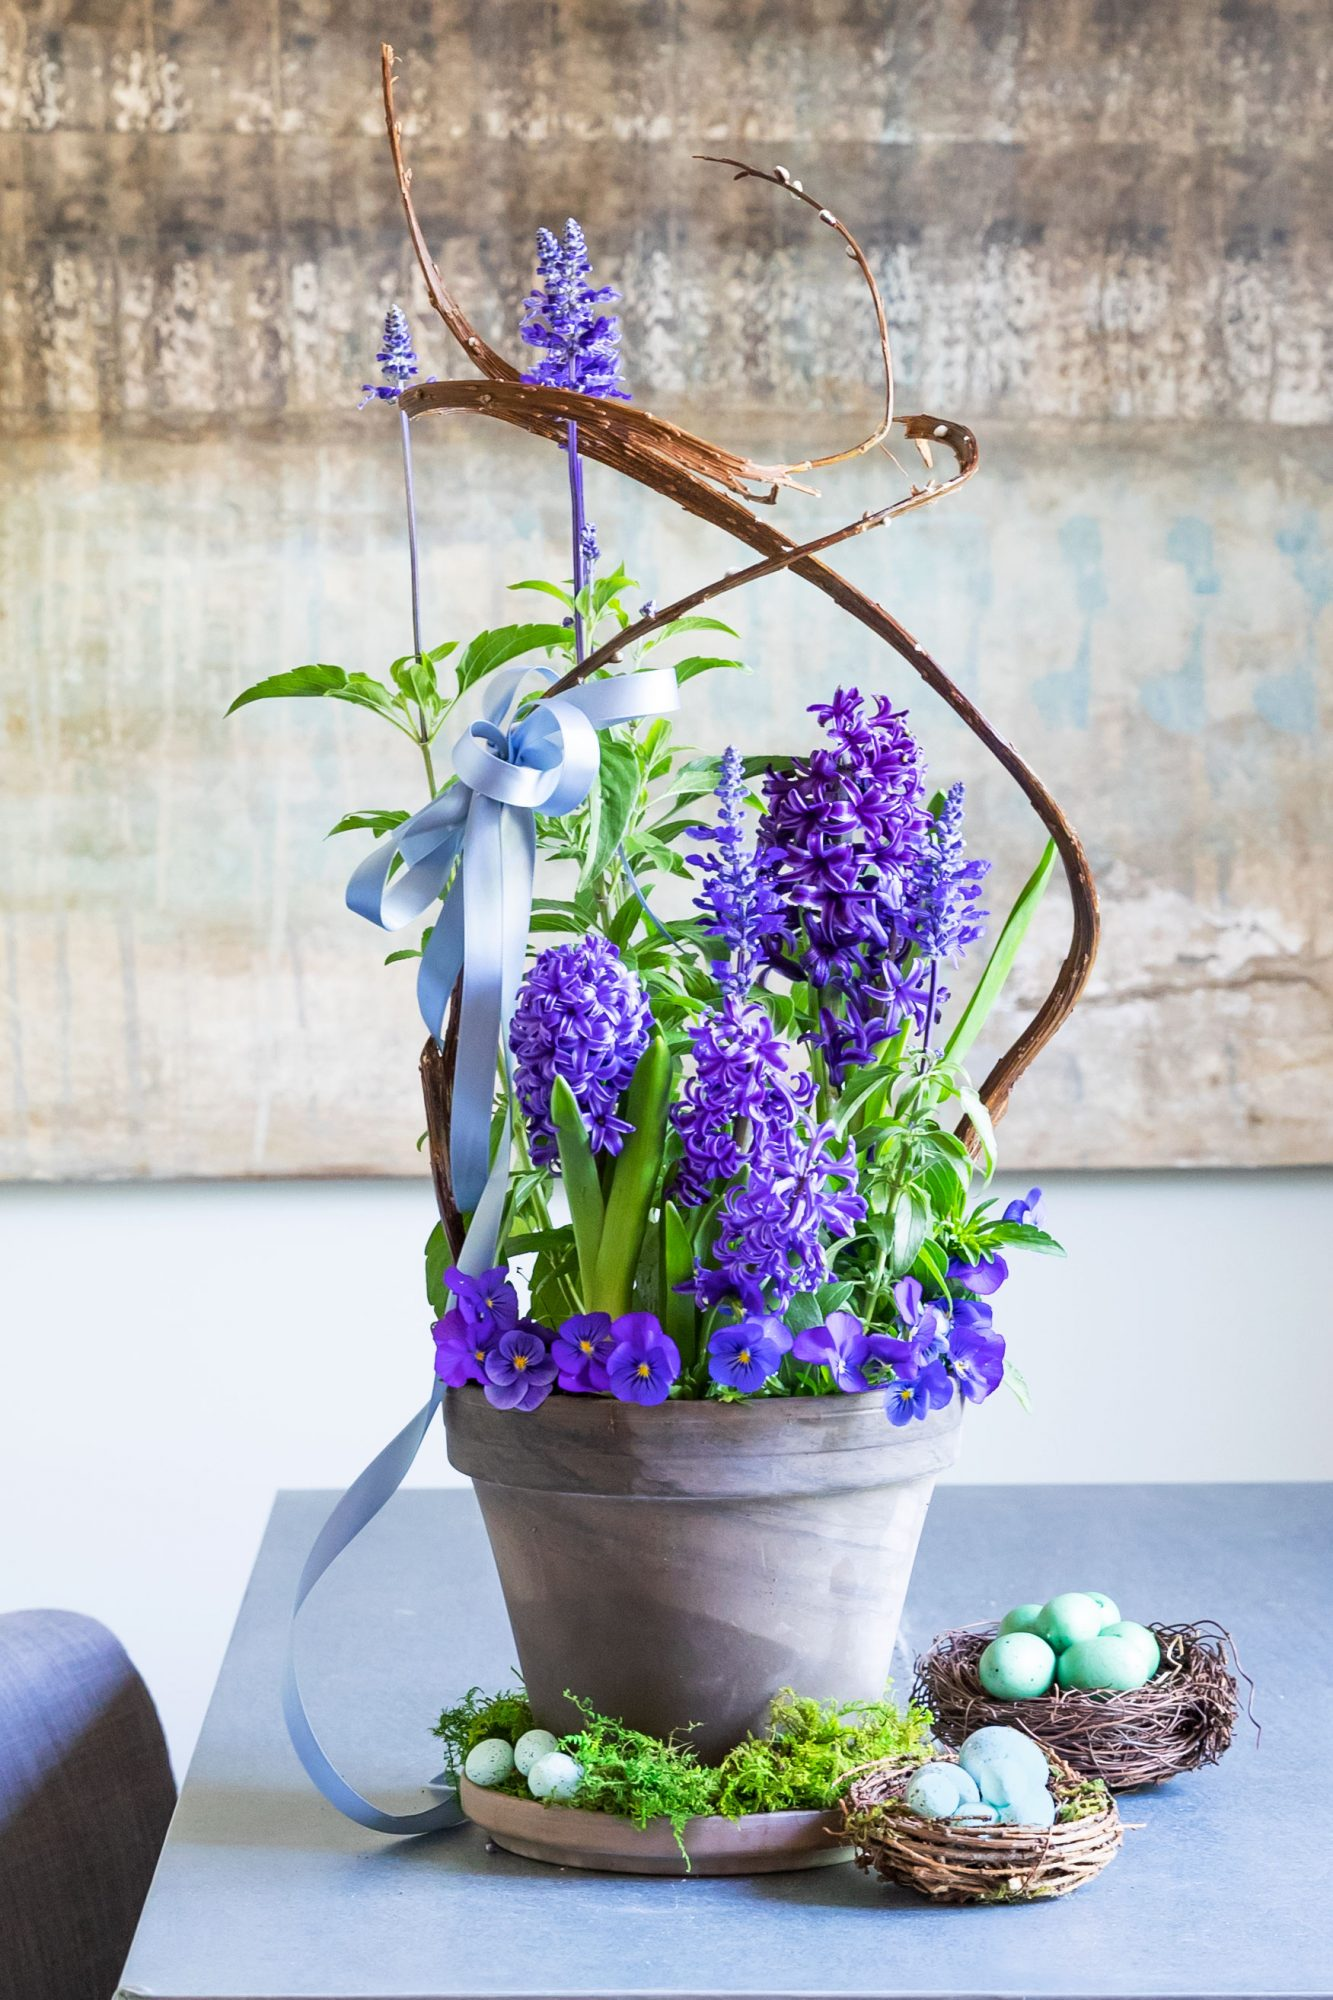 Potted purple hyacinths and violas for Easter growing centerpiece